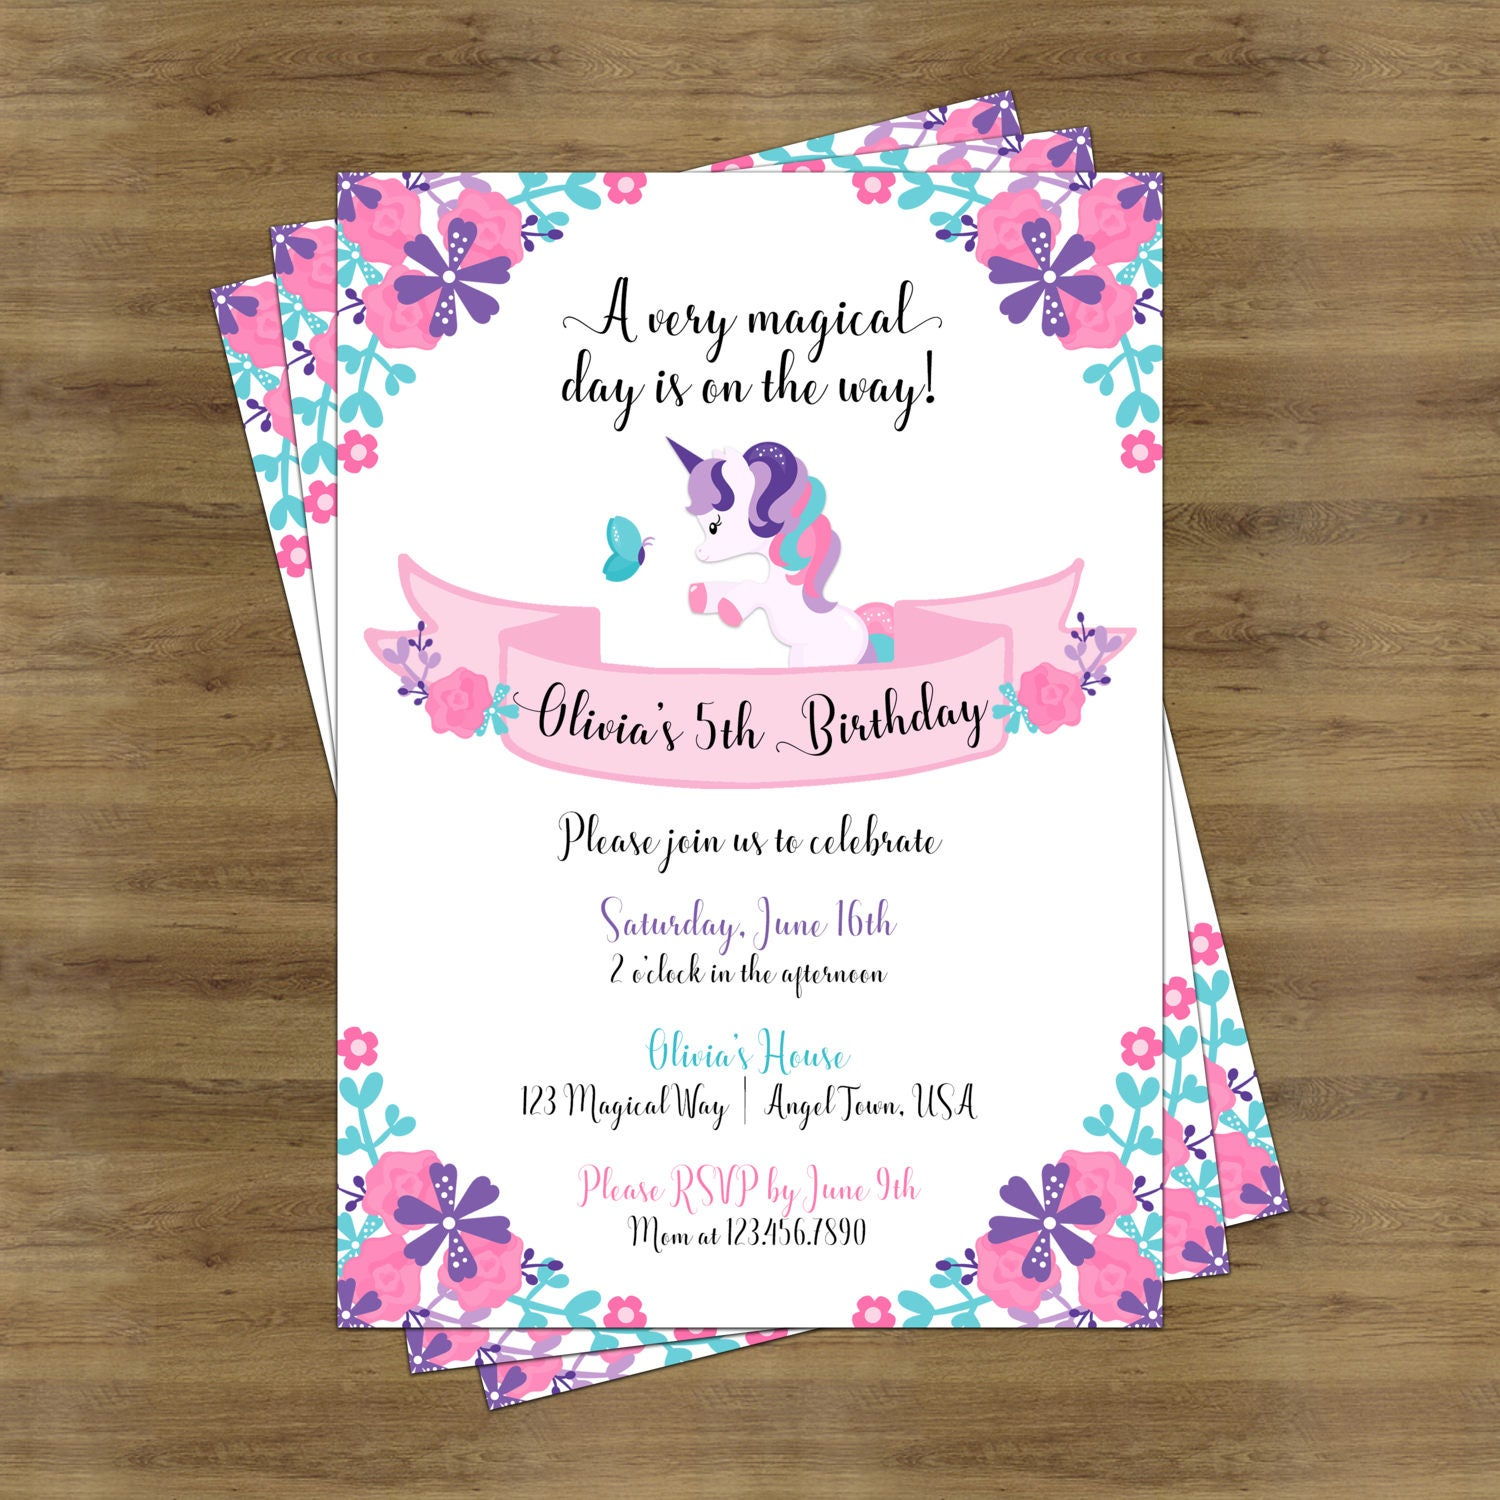 Unicorn Invitation Unicorn Birthday Invitation Unicorn – Unicorn Birthday Party Invitations